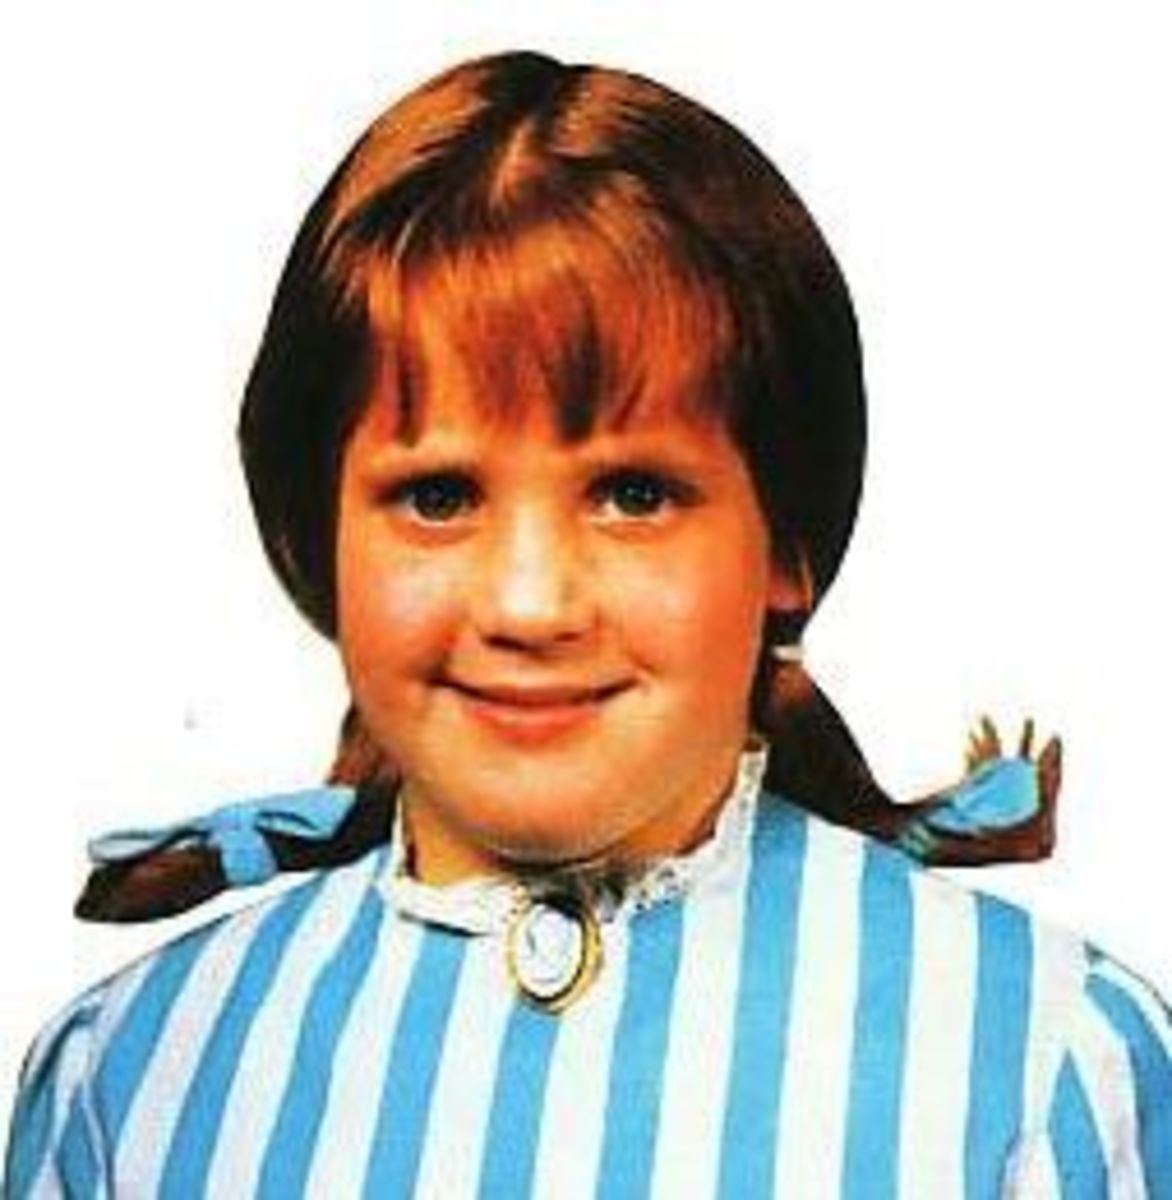 The Wendy's Mascot was Based on a real Wendy, the daughter of the founder of this brand!